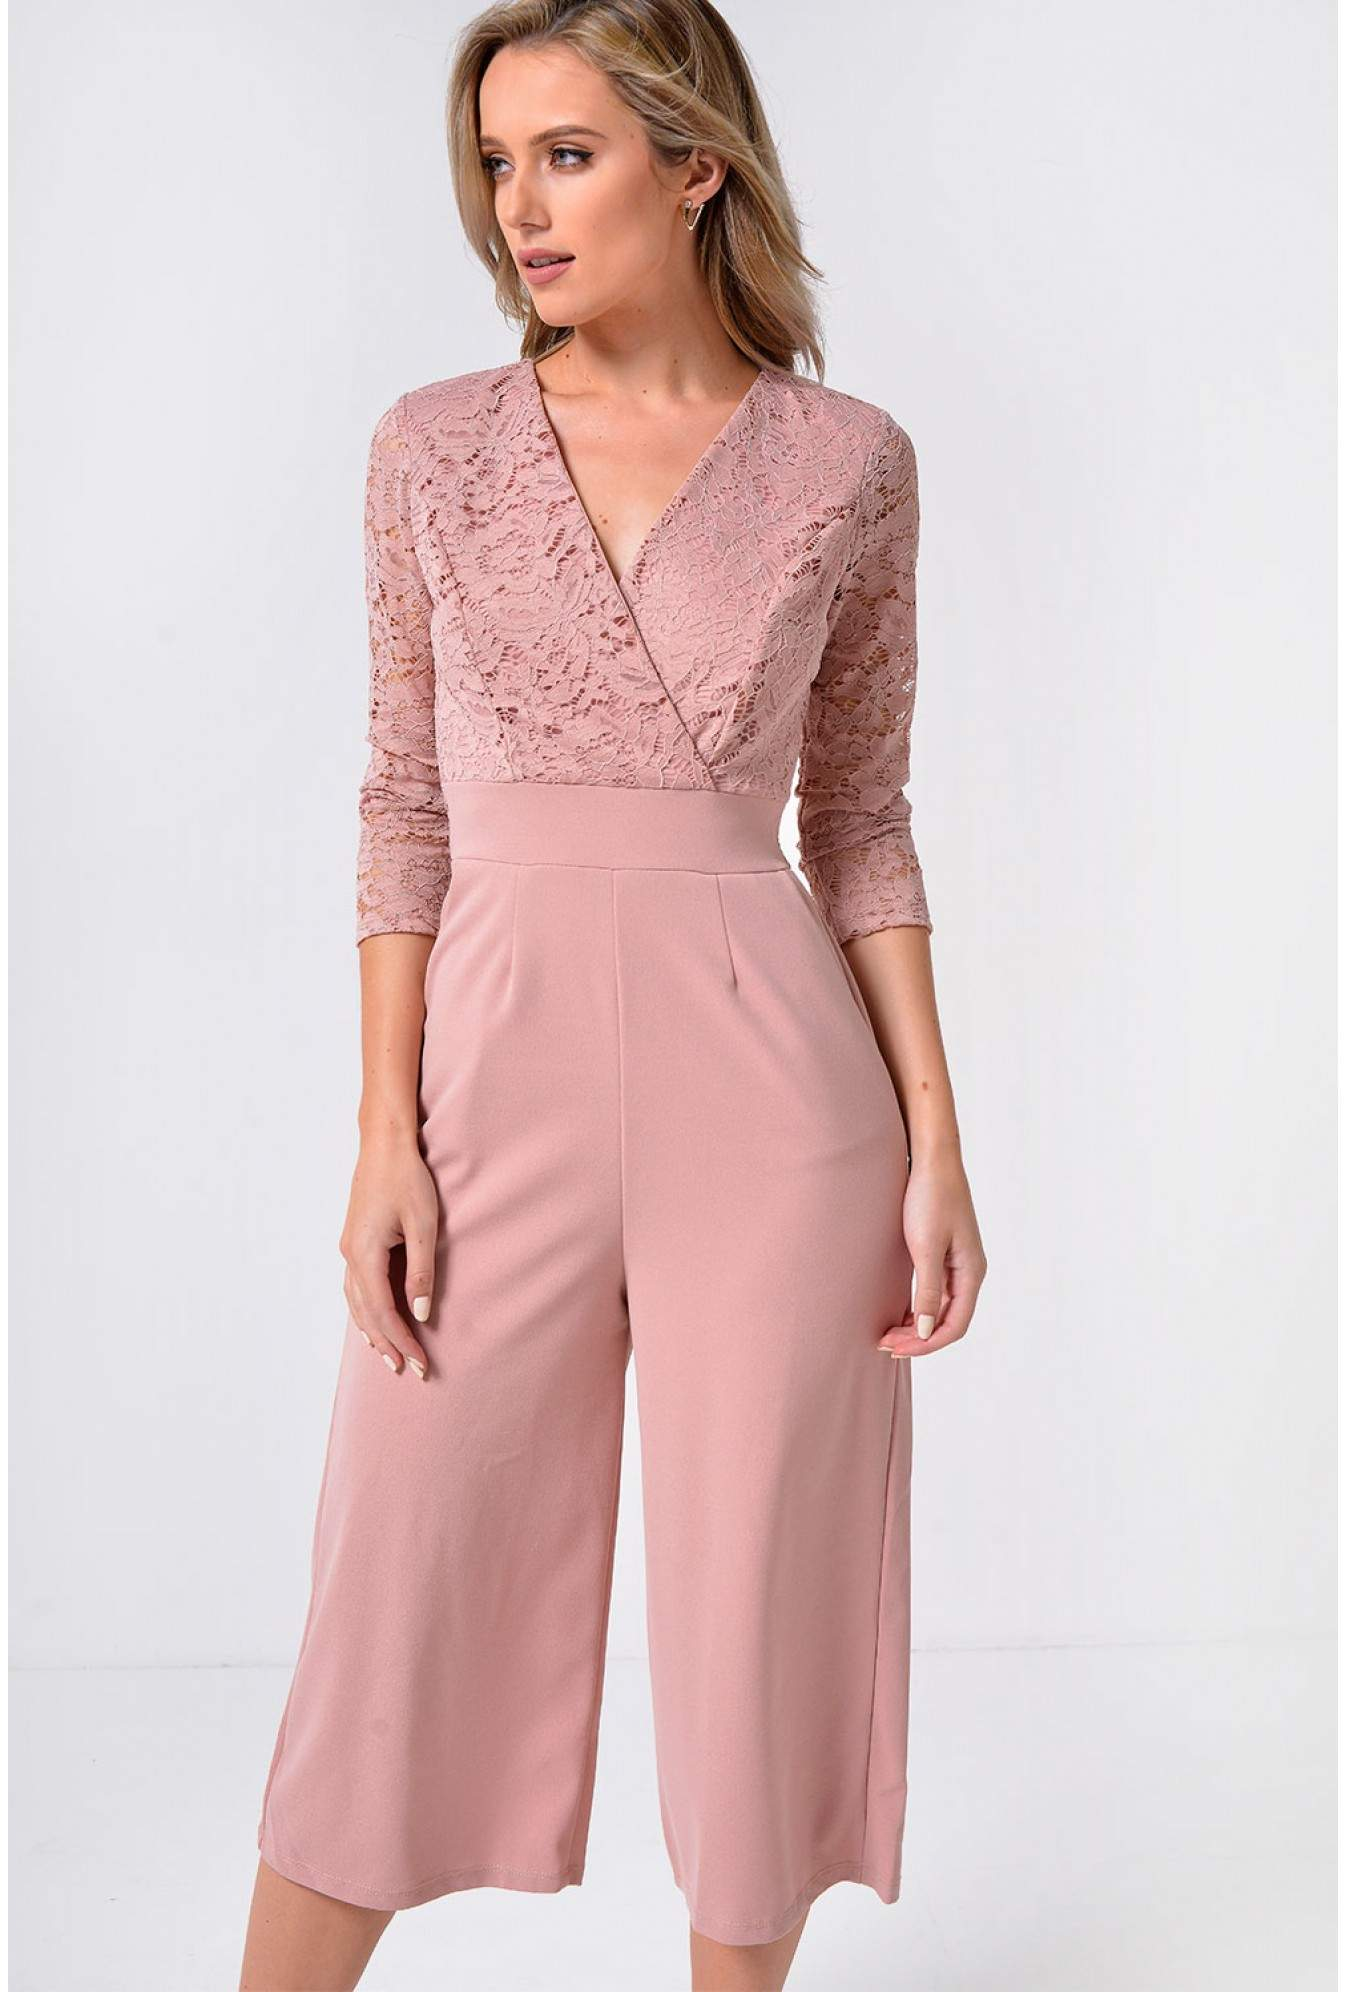 4ab61ef4fc47d Wal G Madrid Plunge Culotte Jumpsuit with Lace Detail in Blush ...